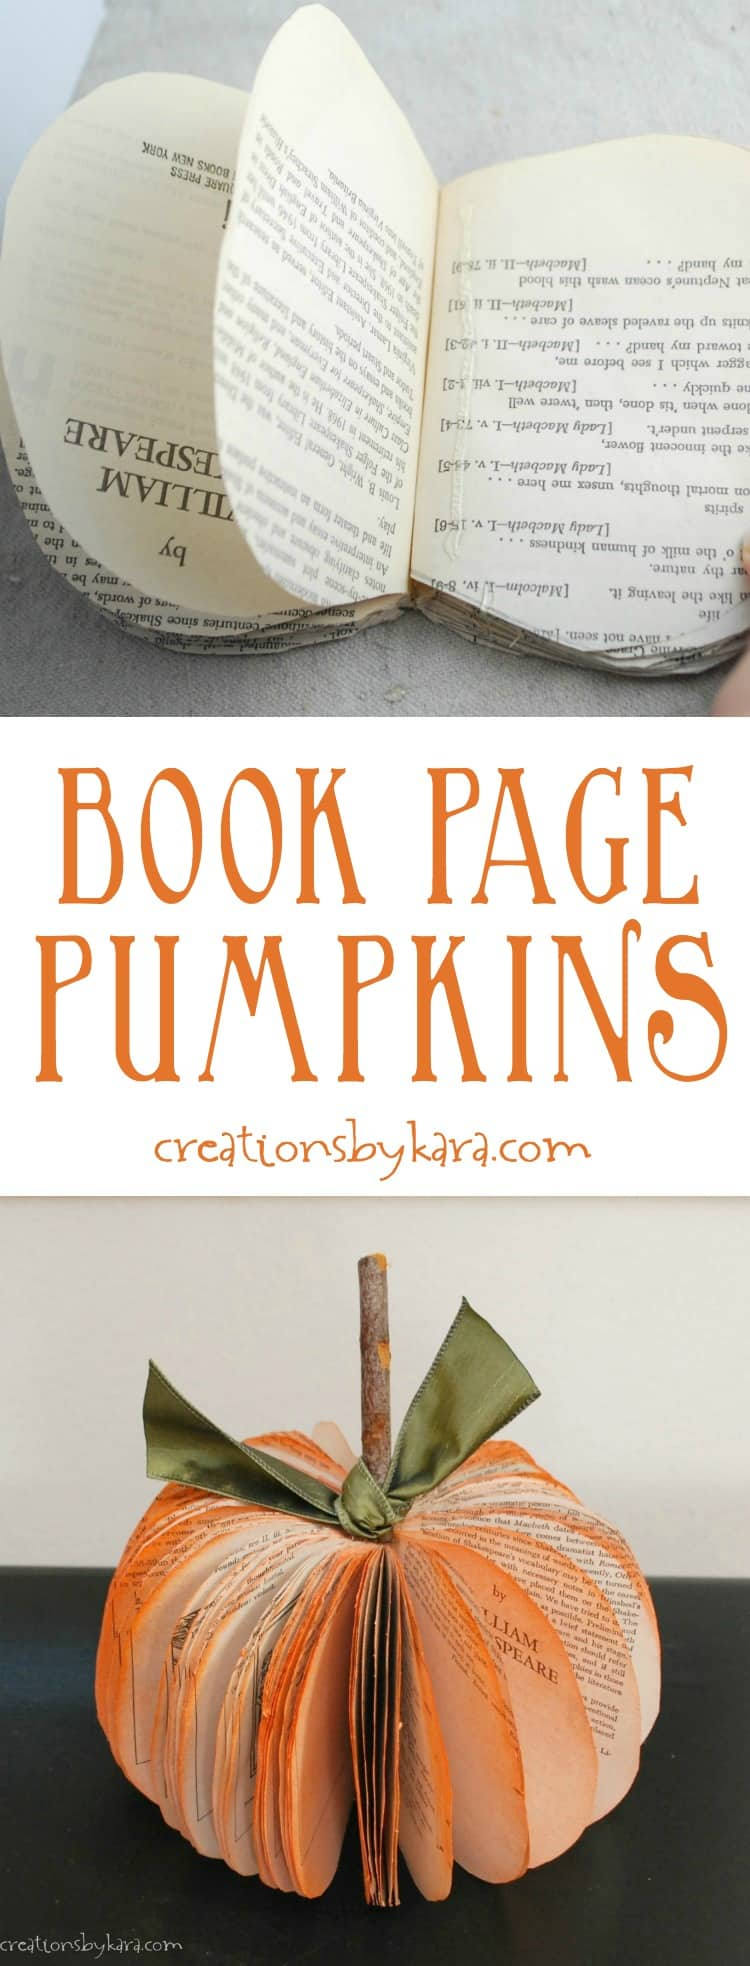 These Book Page Pumpkins are easy to make, and make such cute fall decor! Transform an old book into a darling paper pumpkin. A simple fall craft idea.